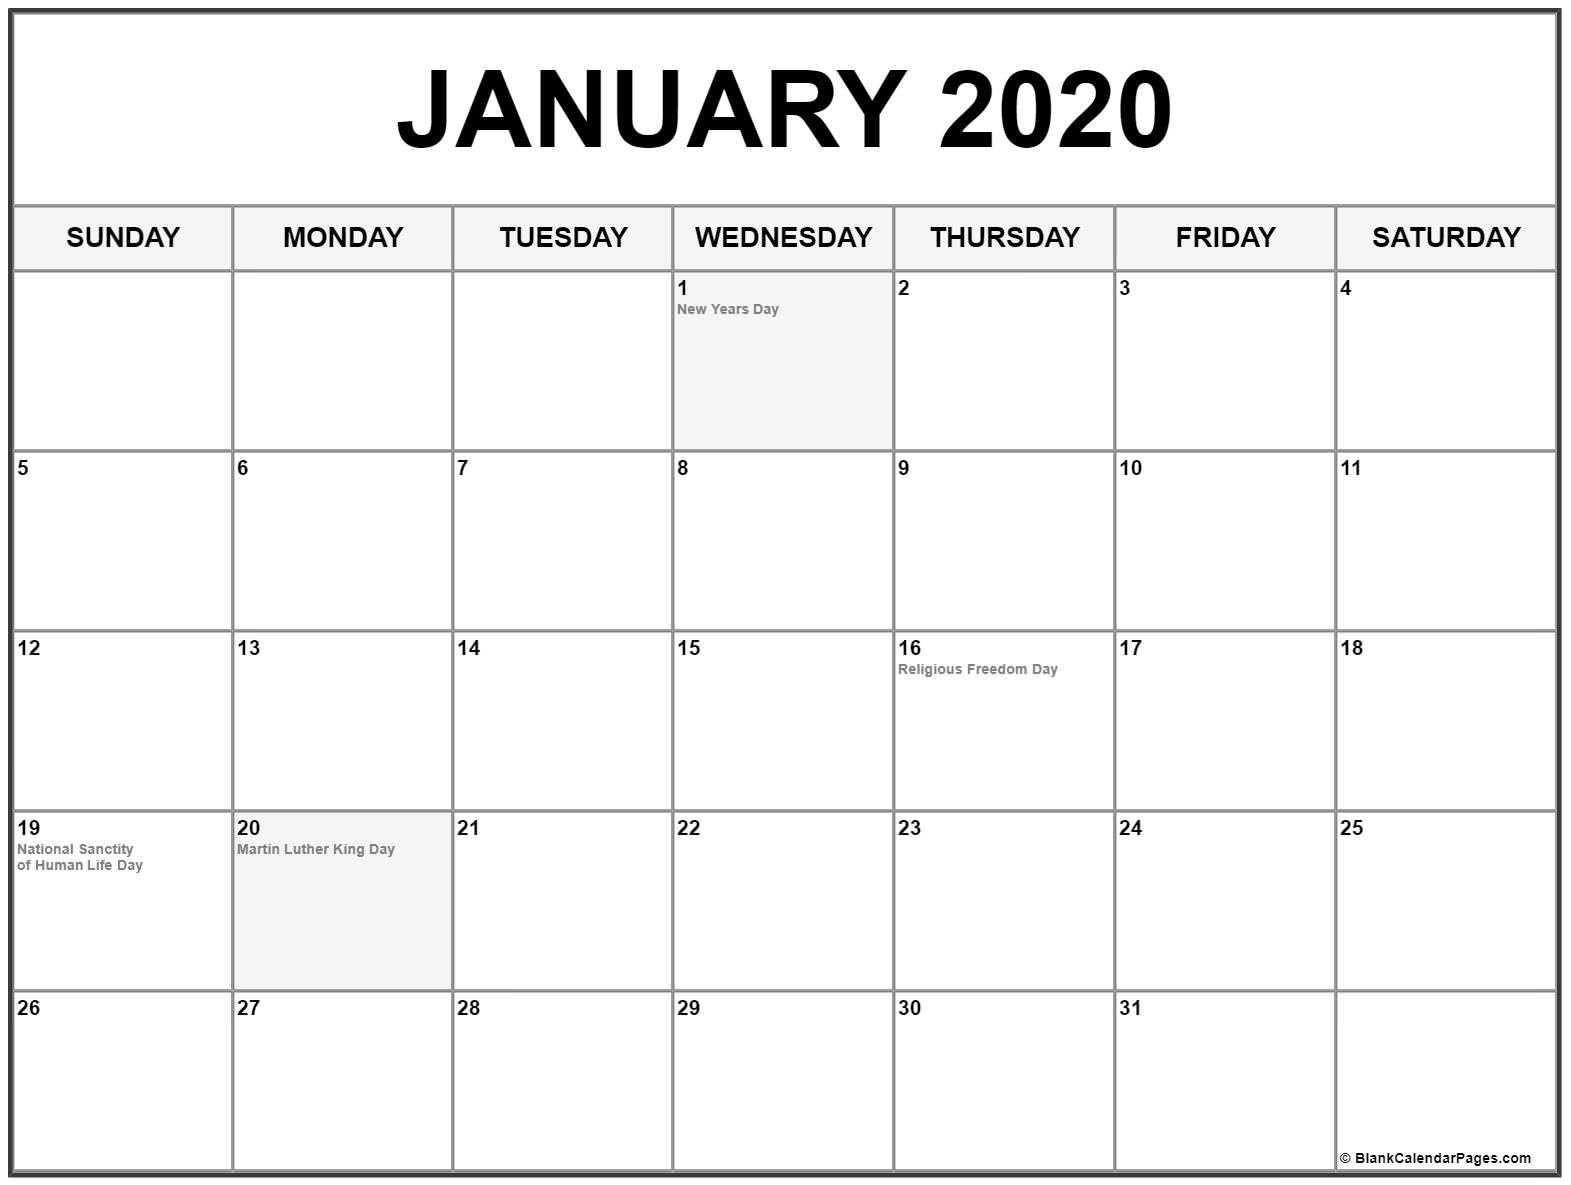 Collection Of January 2020 Calendars With Holidays-January 2020 Calendar With Us Holidays